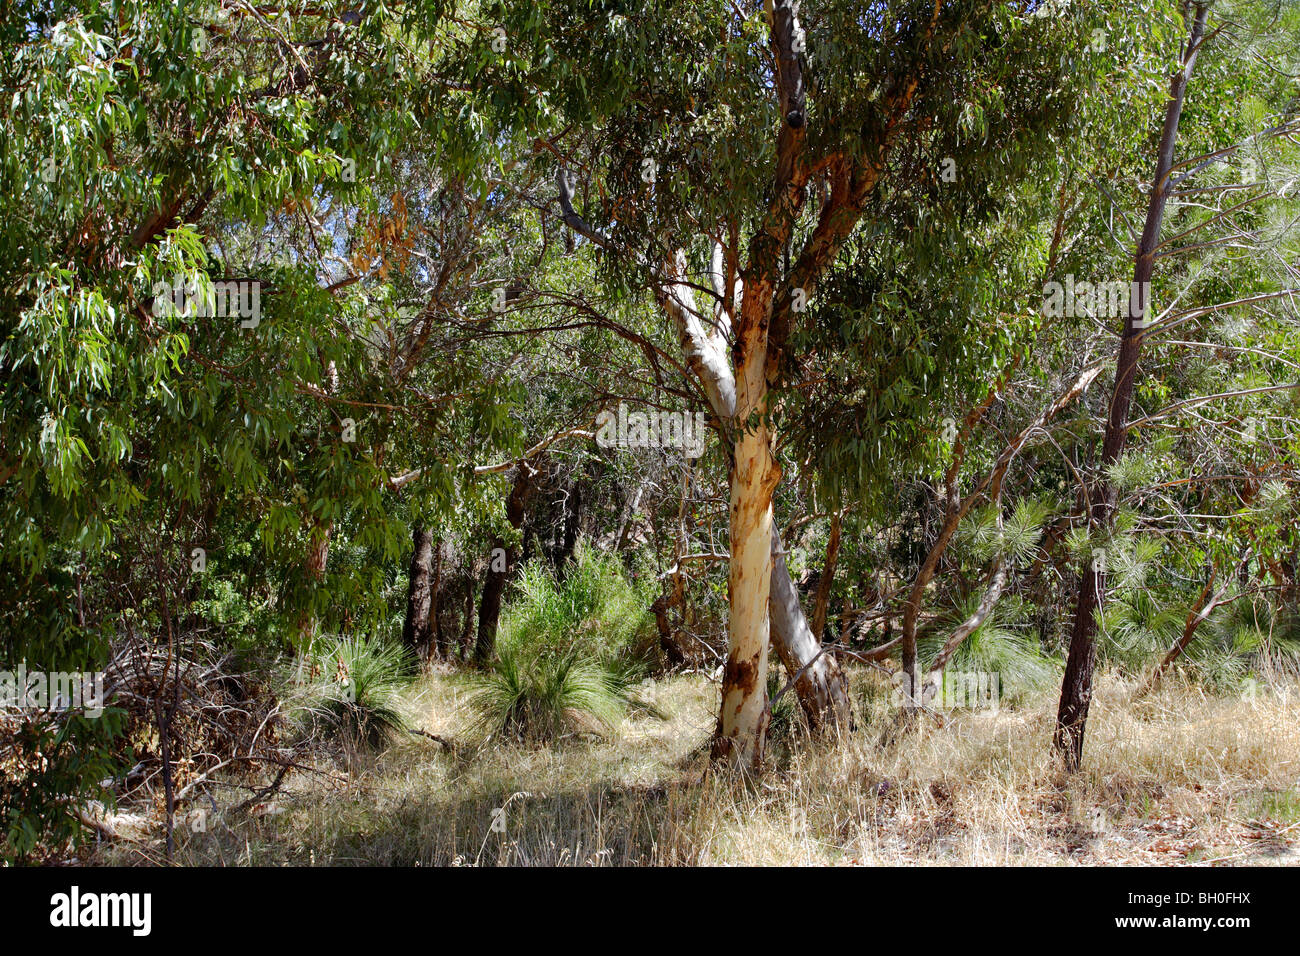 Vegetation in Western Australia. - Stock Image